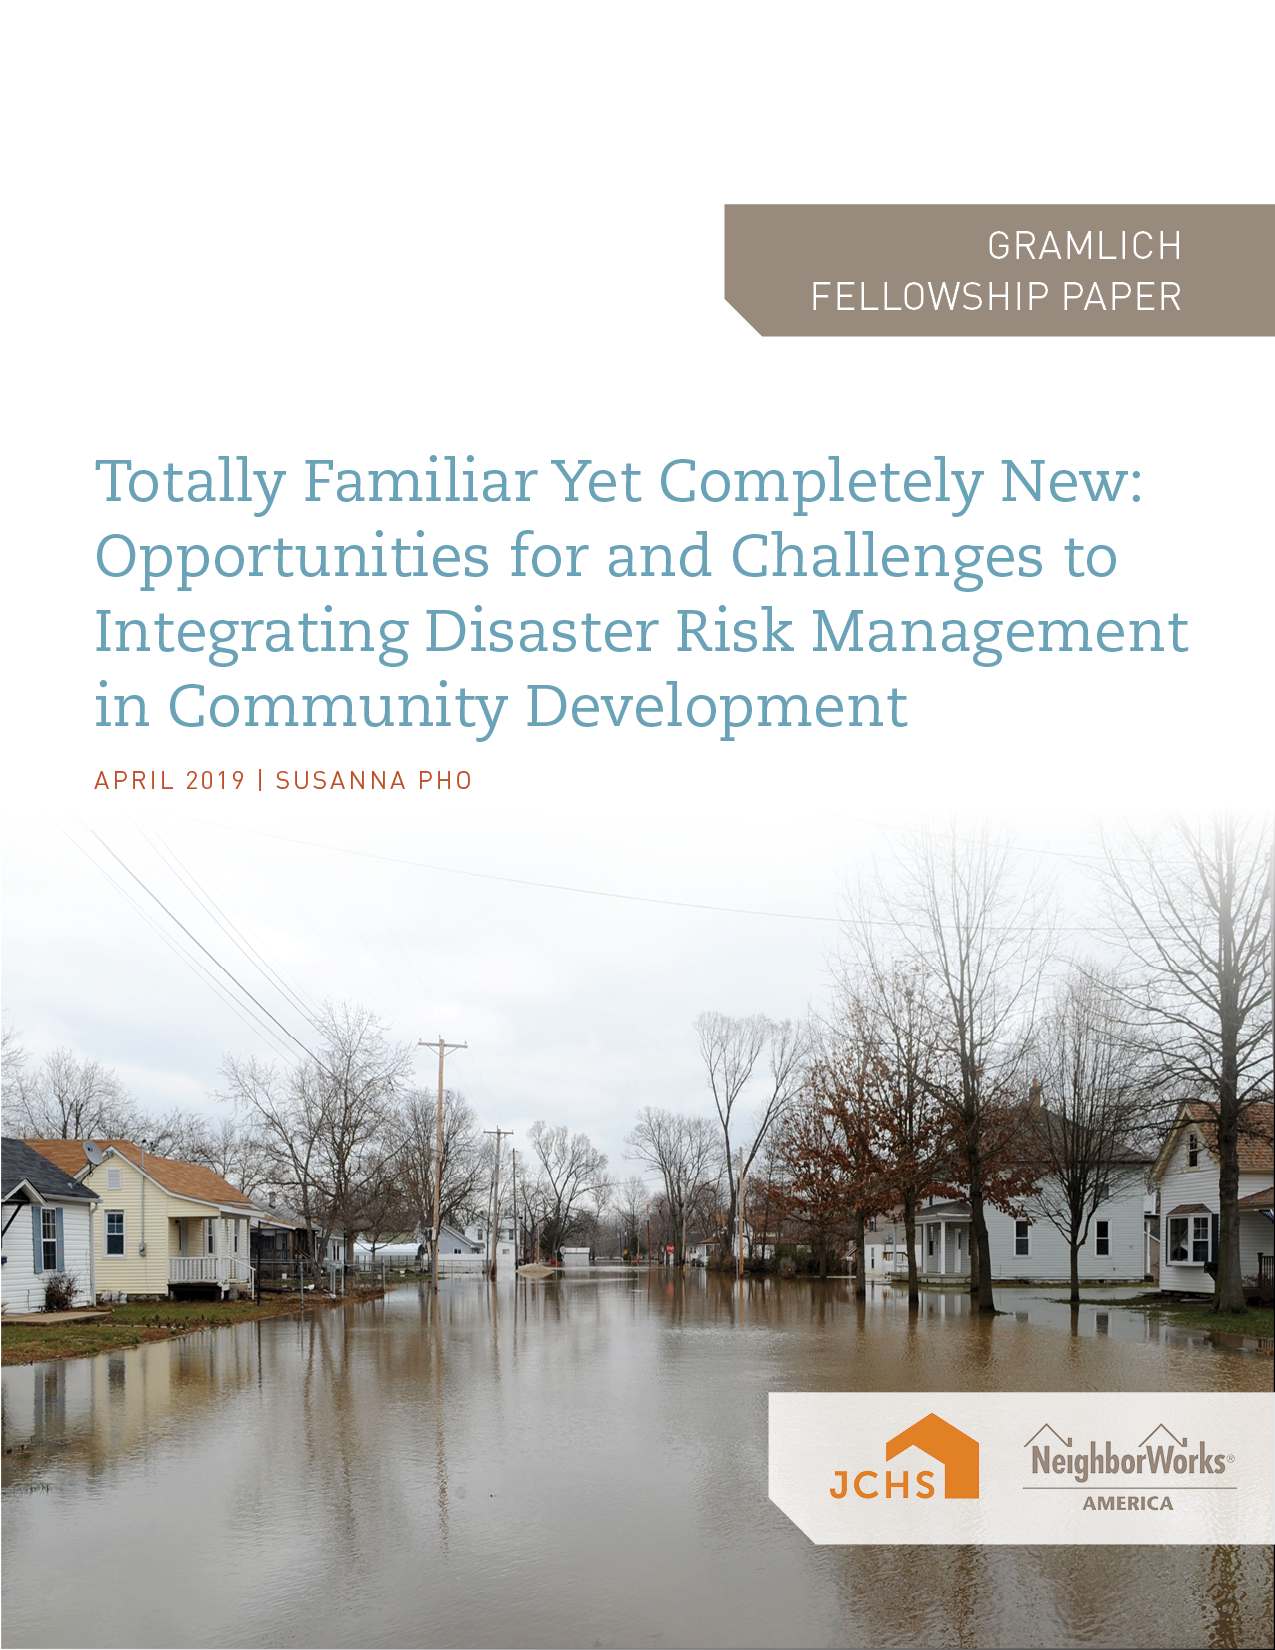 Totally Familiar Yet Completely New: Opportunities for and Challenges to Integrating Disaster Risk Management in Community Development